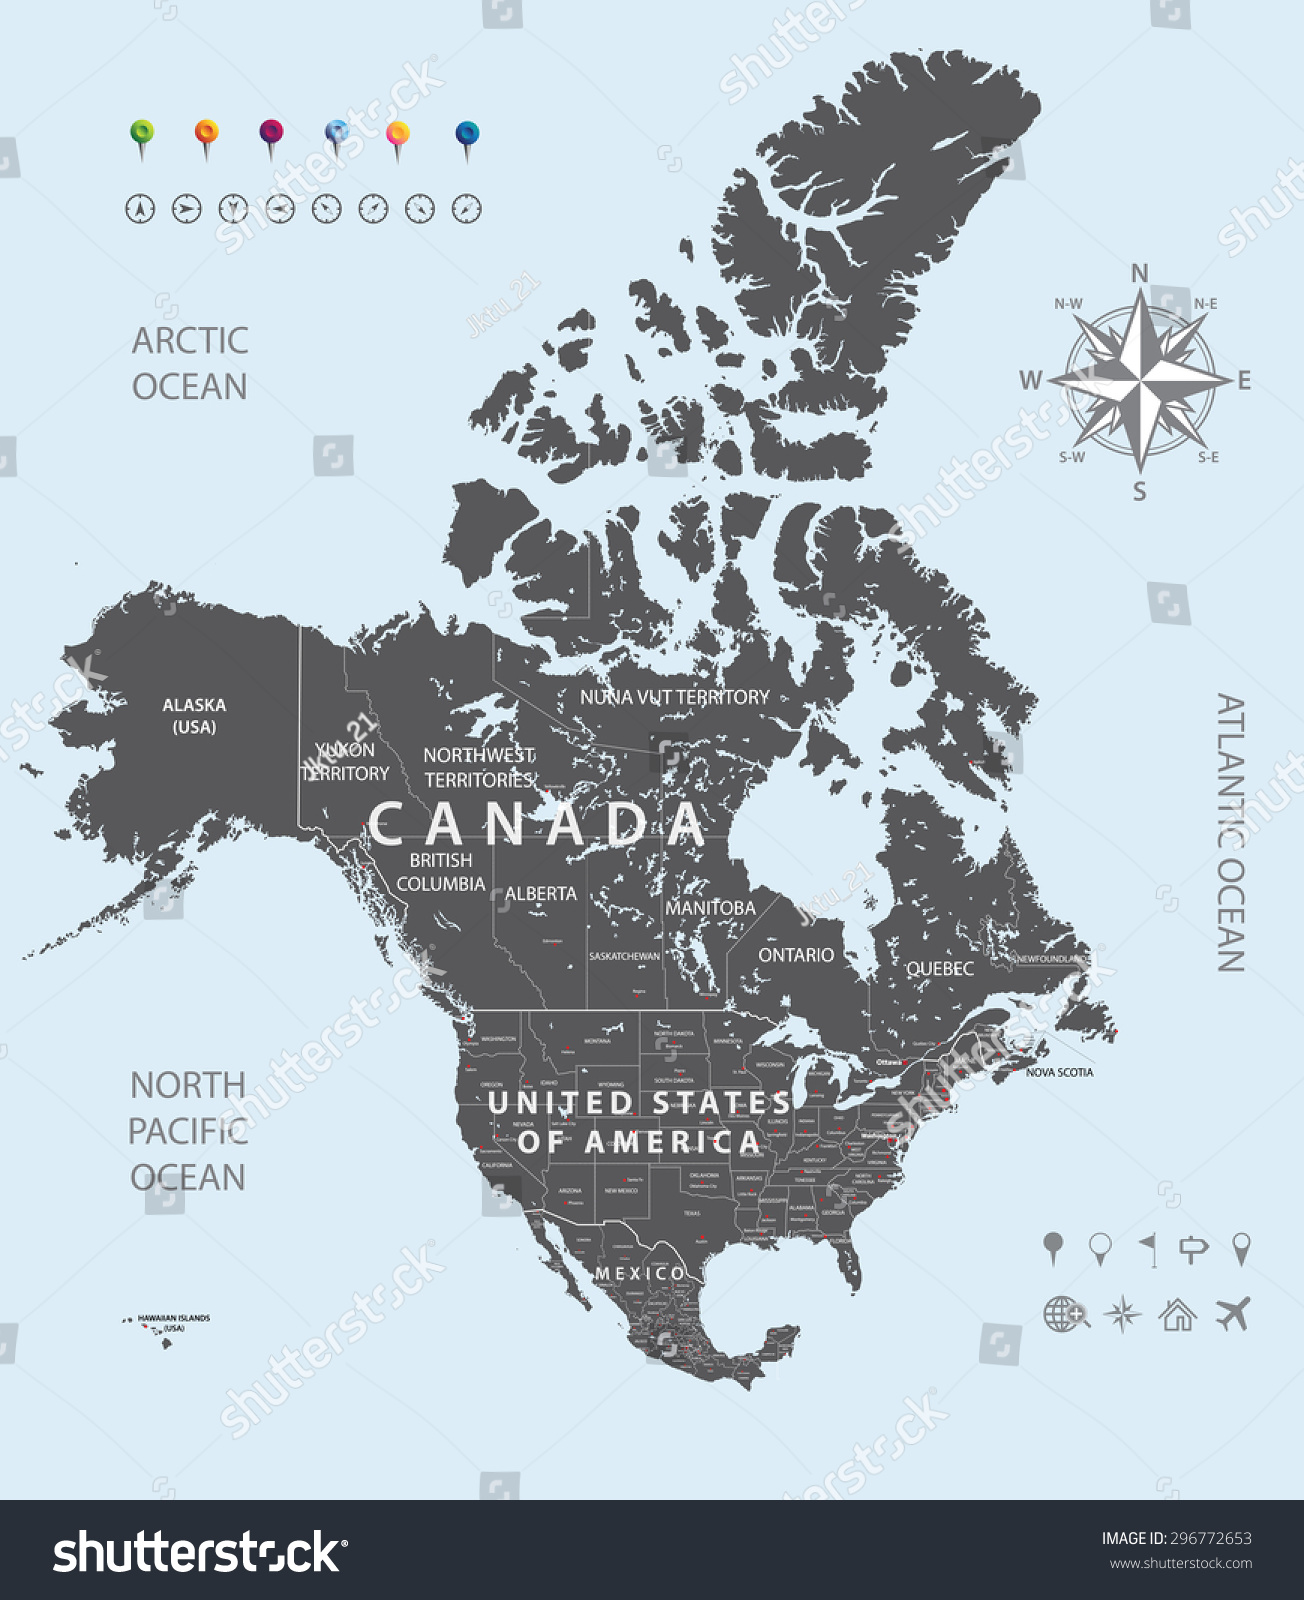 Map Canada Usa Mexico States Borders Stock Vector - Map of canada and usa